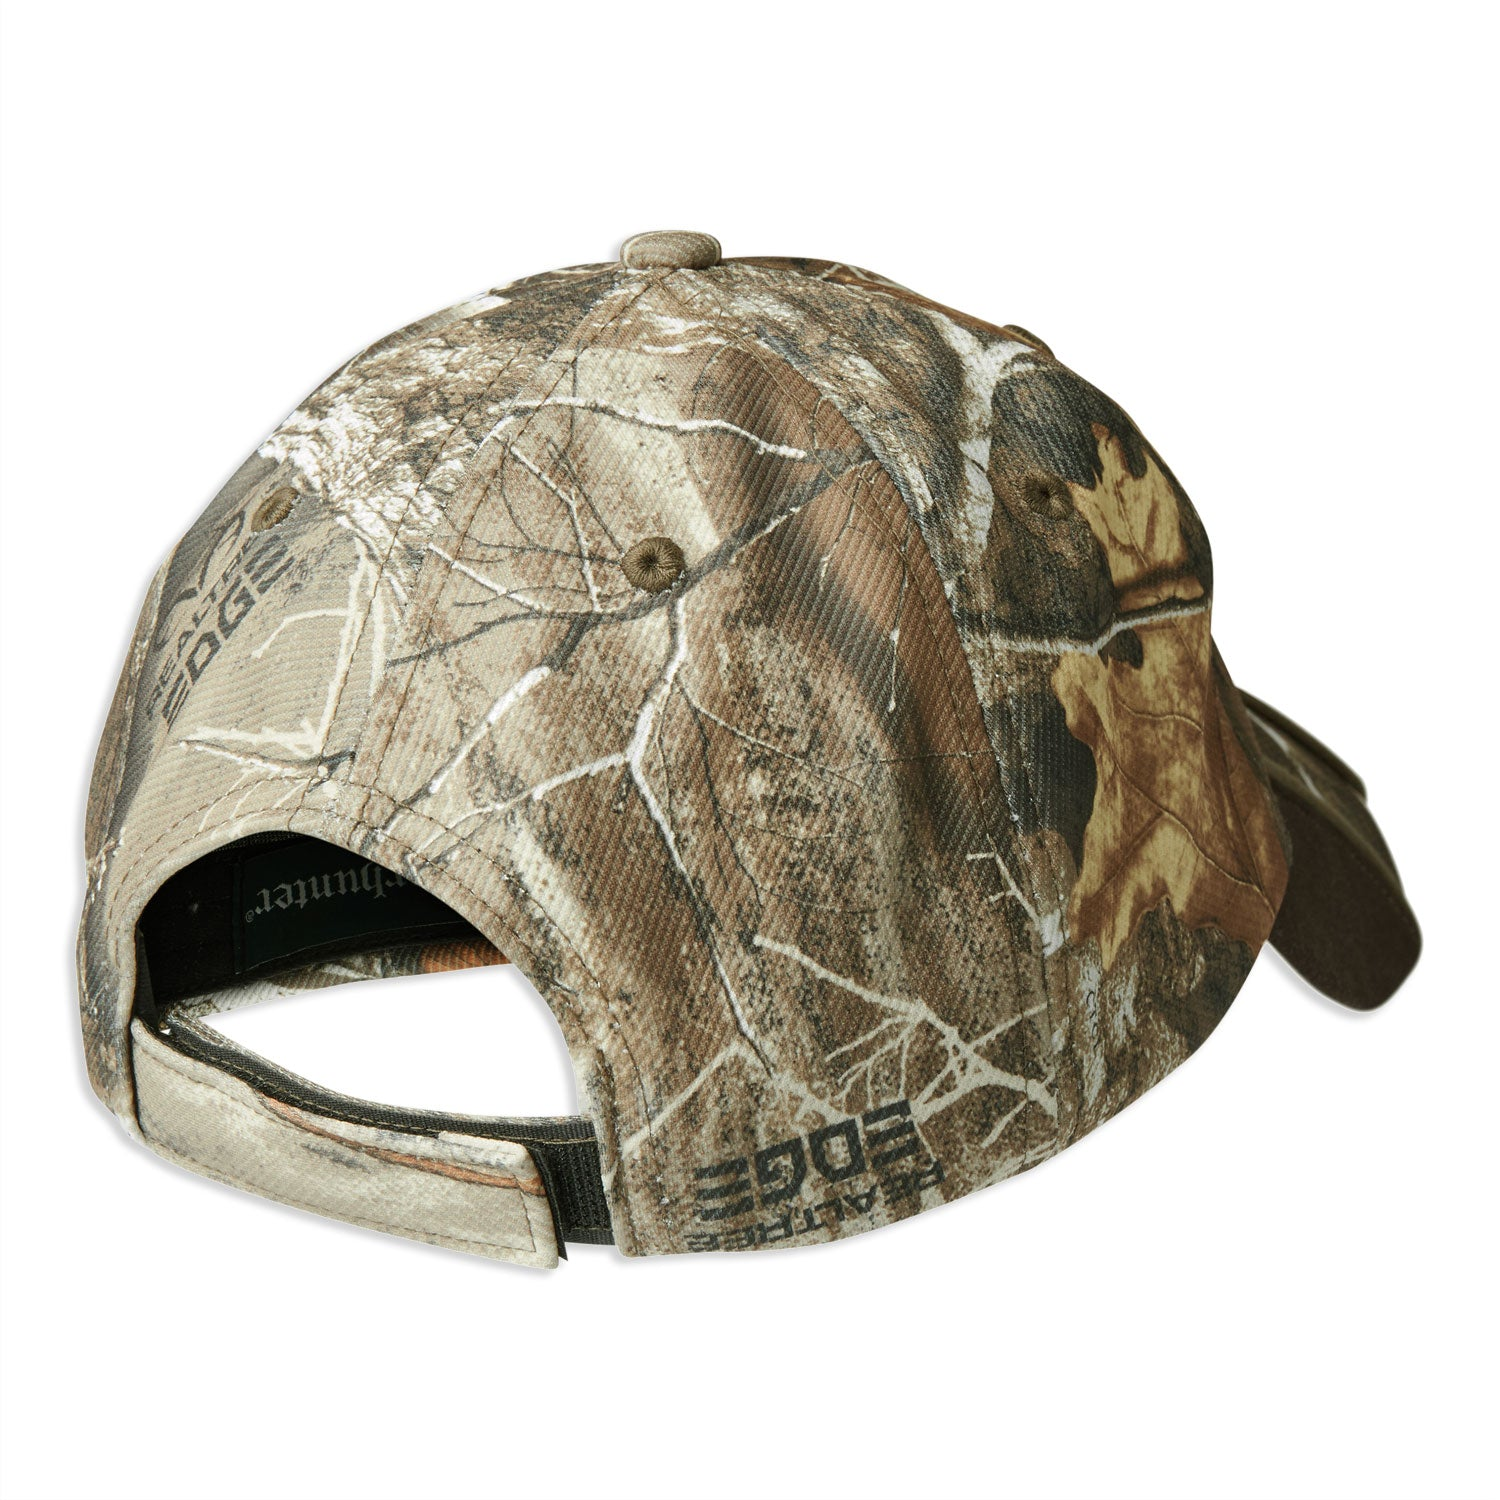 Stunningly realistic Realtree Max-5 Camo with photo realism effect fof the hunting edge!